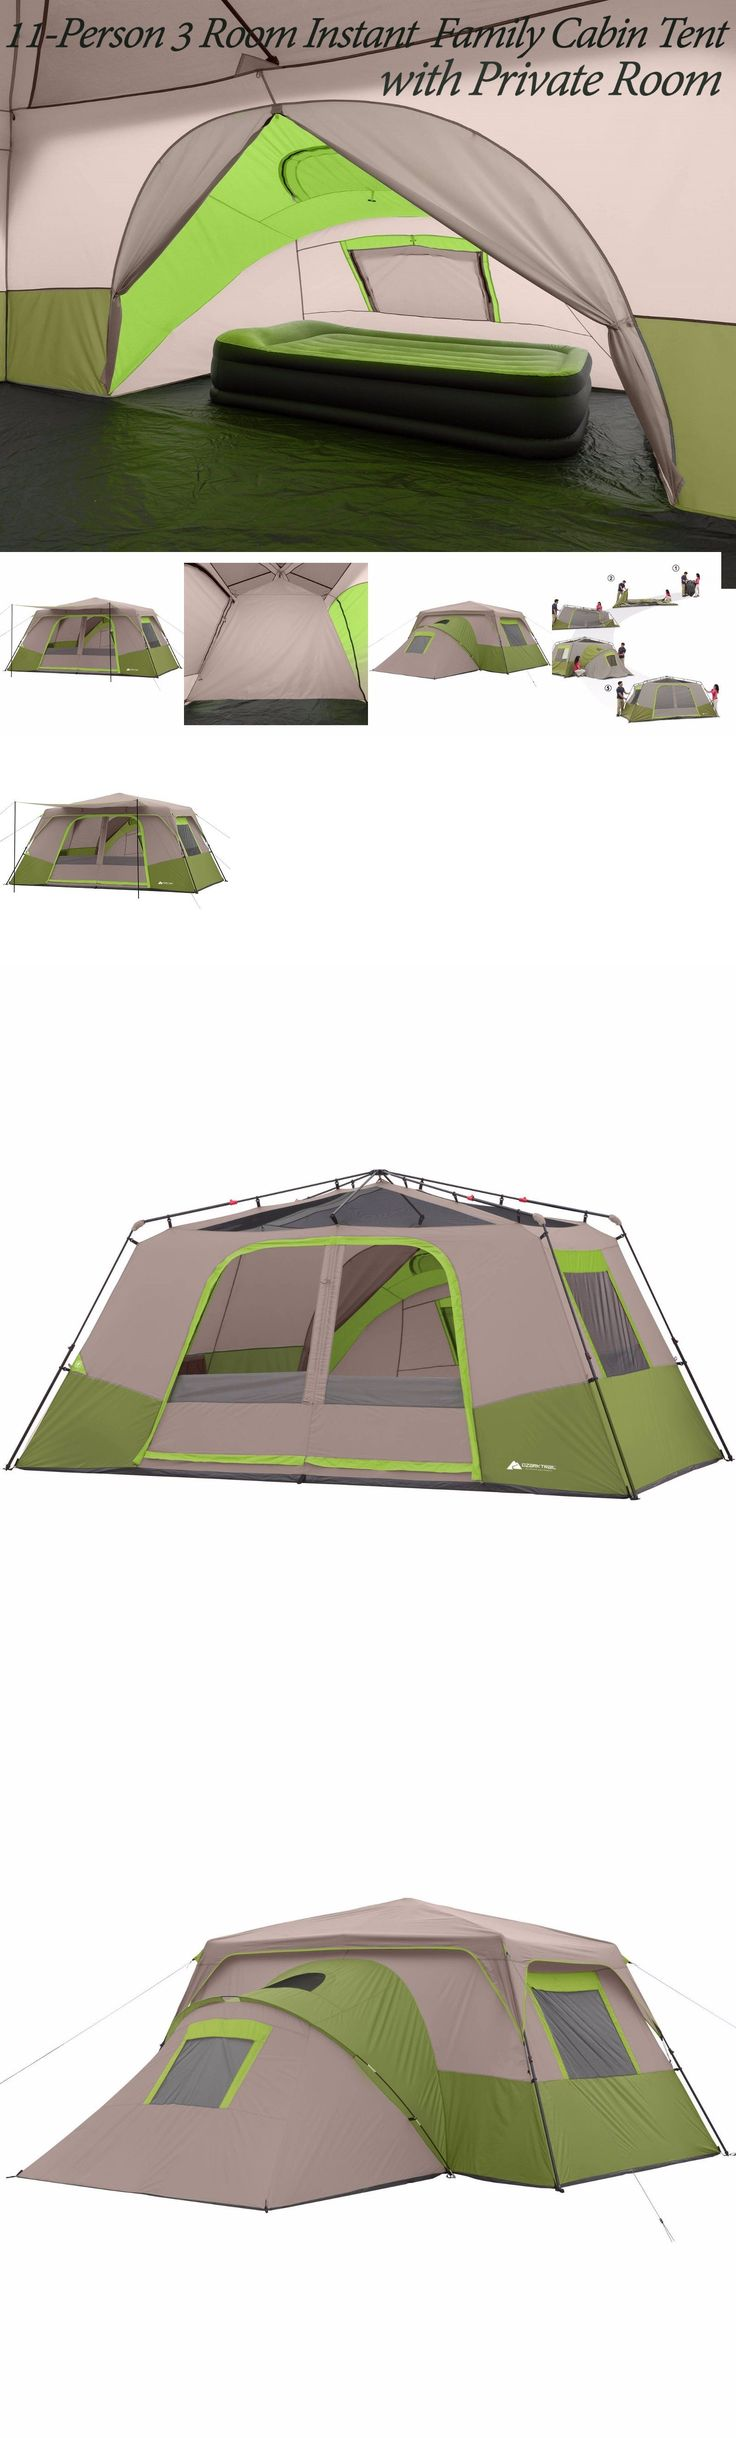 Tents 179010: Ozark Trail 11 Person 3 Room Instant Cabin Family Large Tent Camping Green Beige BUY IT NOW ONLY: $213.93